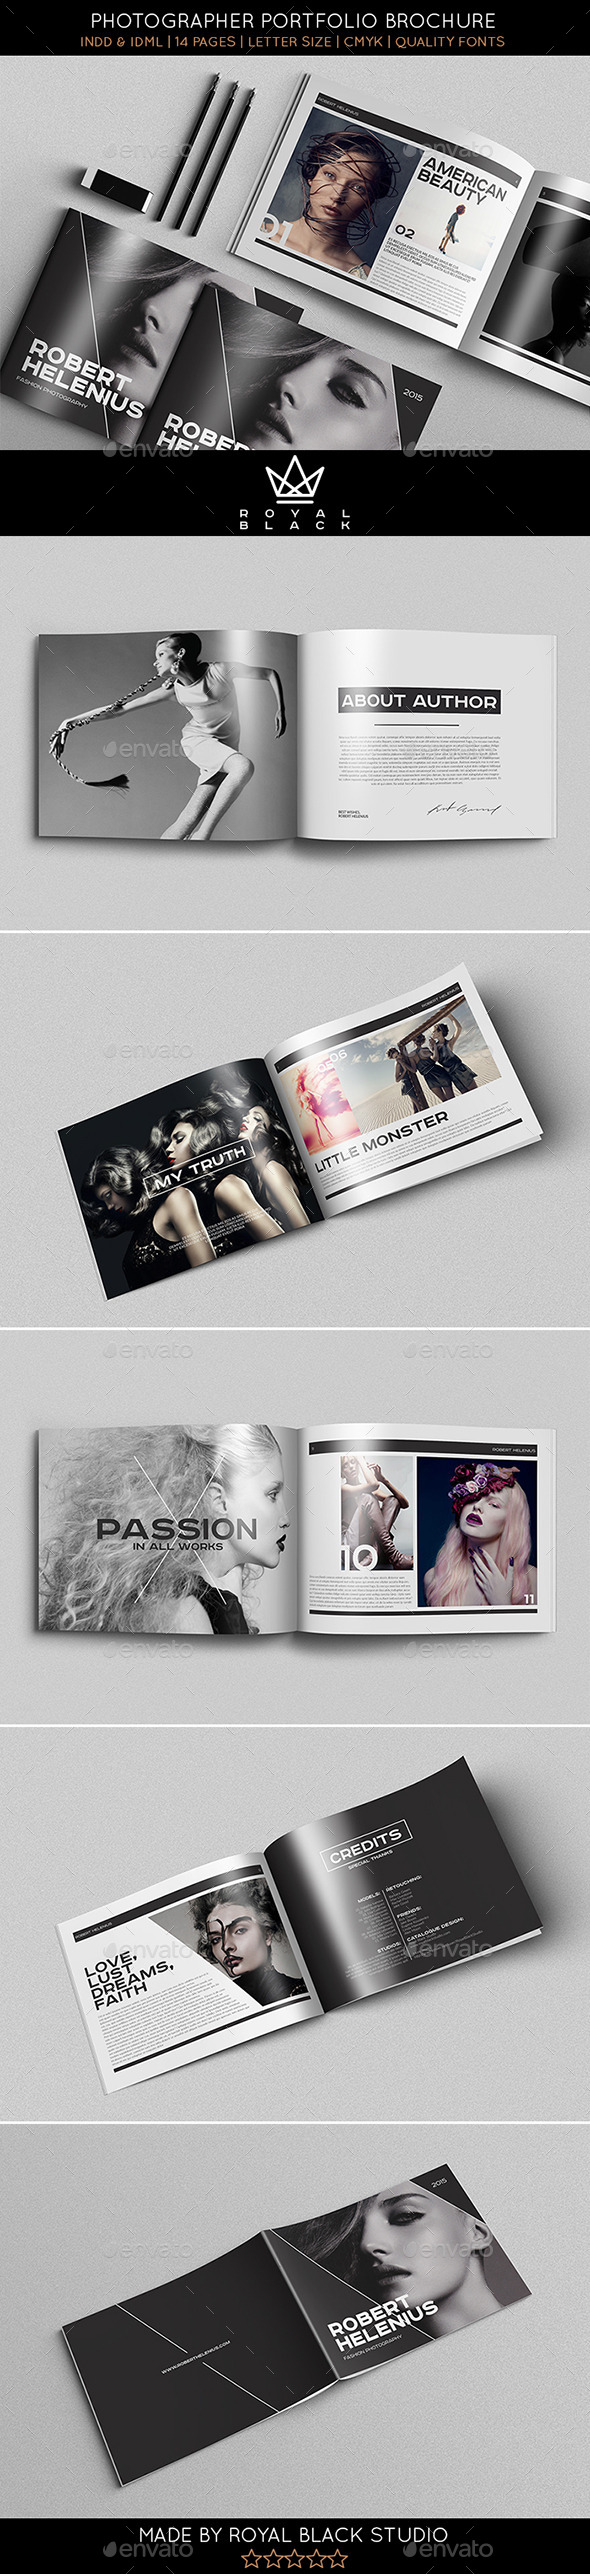 GraphicRiver Portfolio Brochure Vol.5 10011379